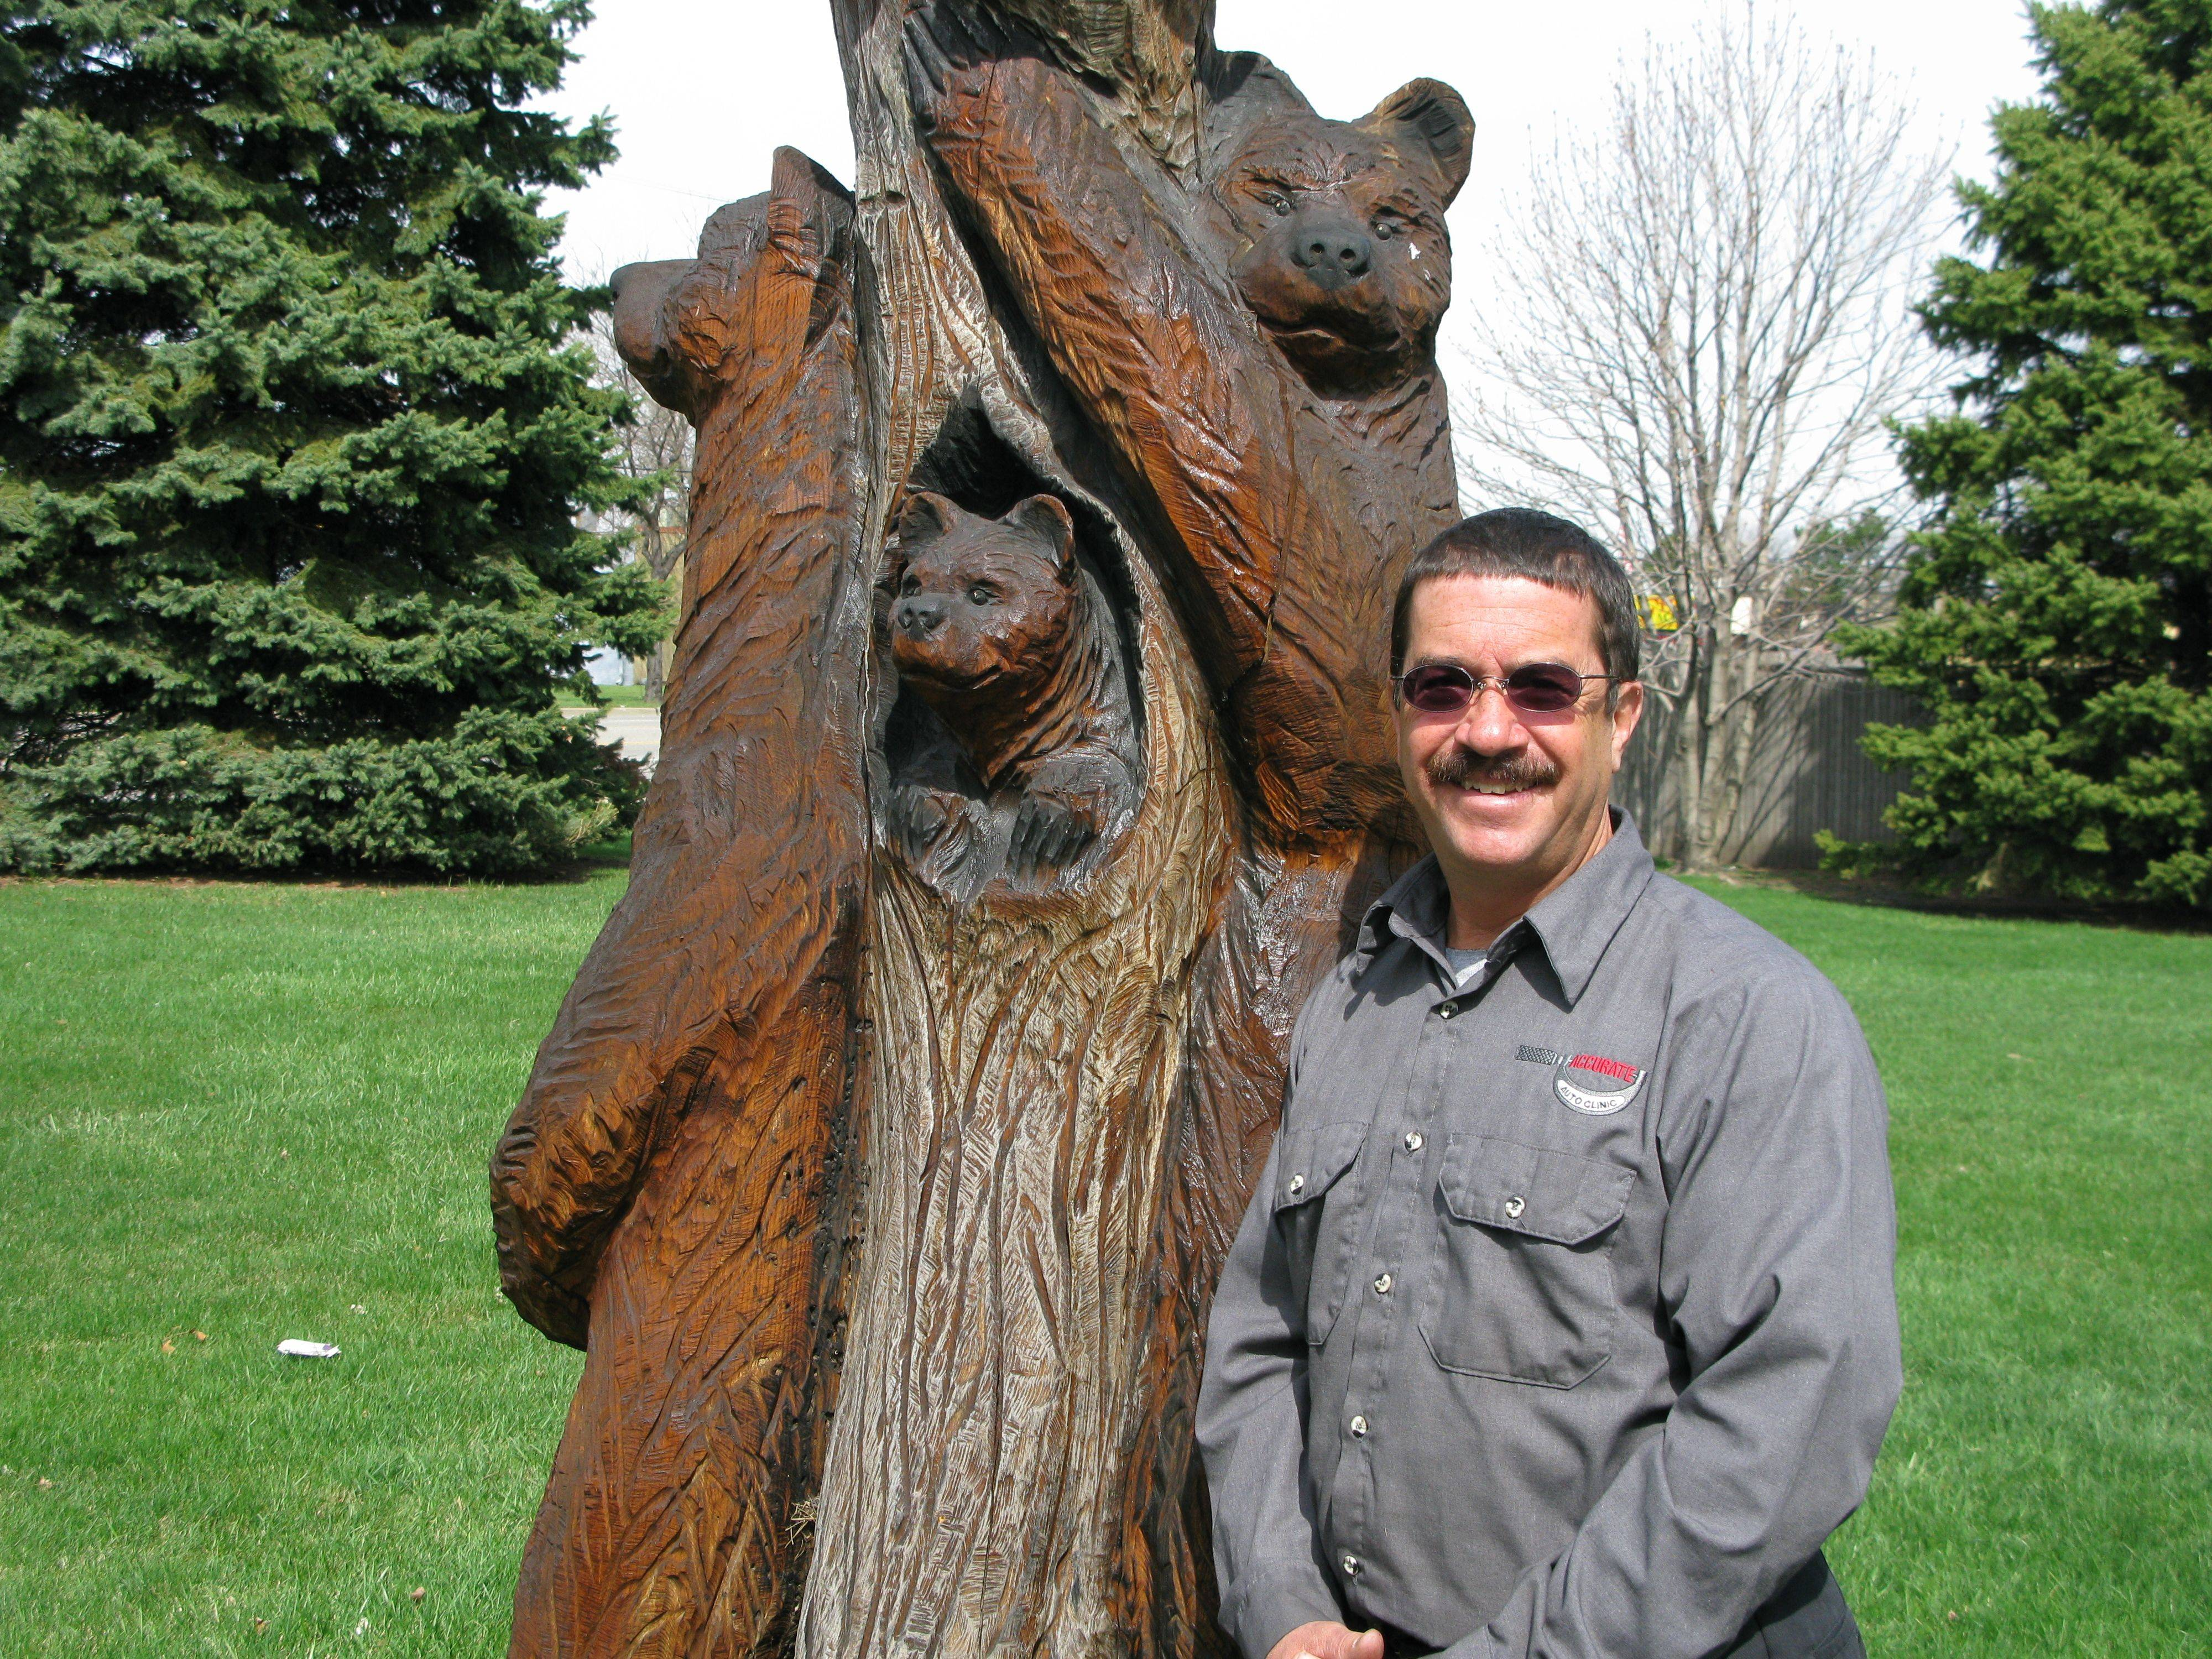 Des Plaines' new 8th Ward alderman-elect Mike Charewicz stands next to a tree in his yard depicting his family. Charewicz says his top priorities are flooding, maximizing casino revenues and bringing in new businesses.